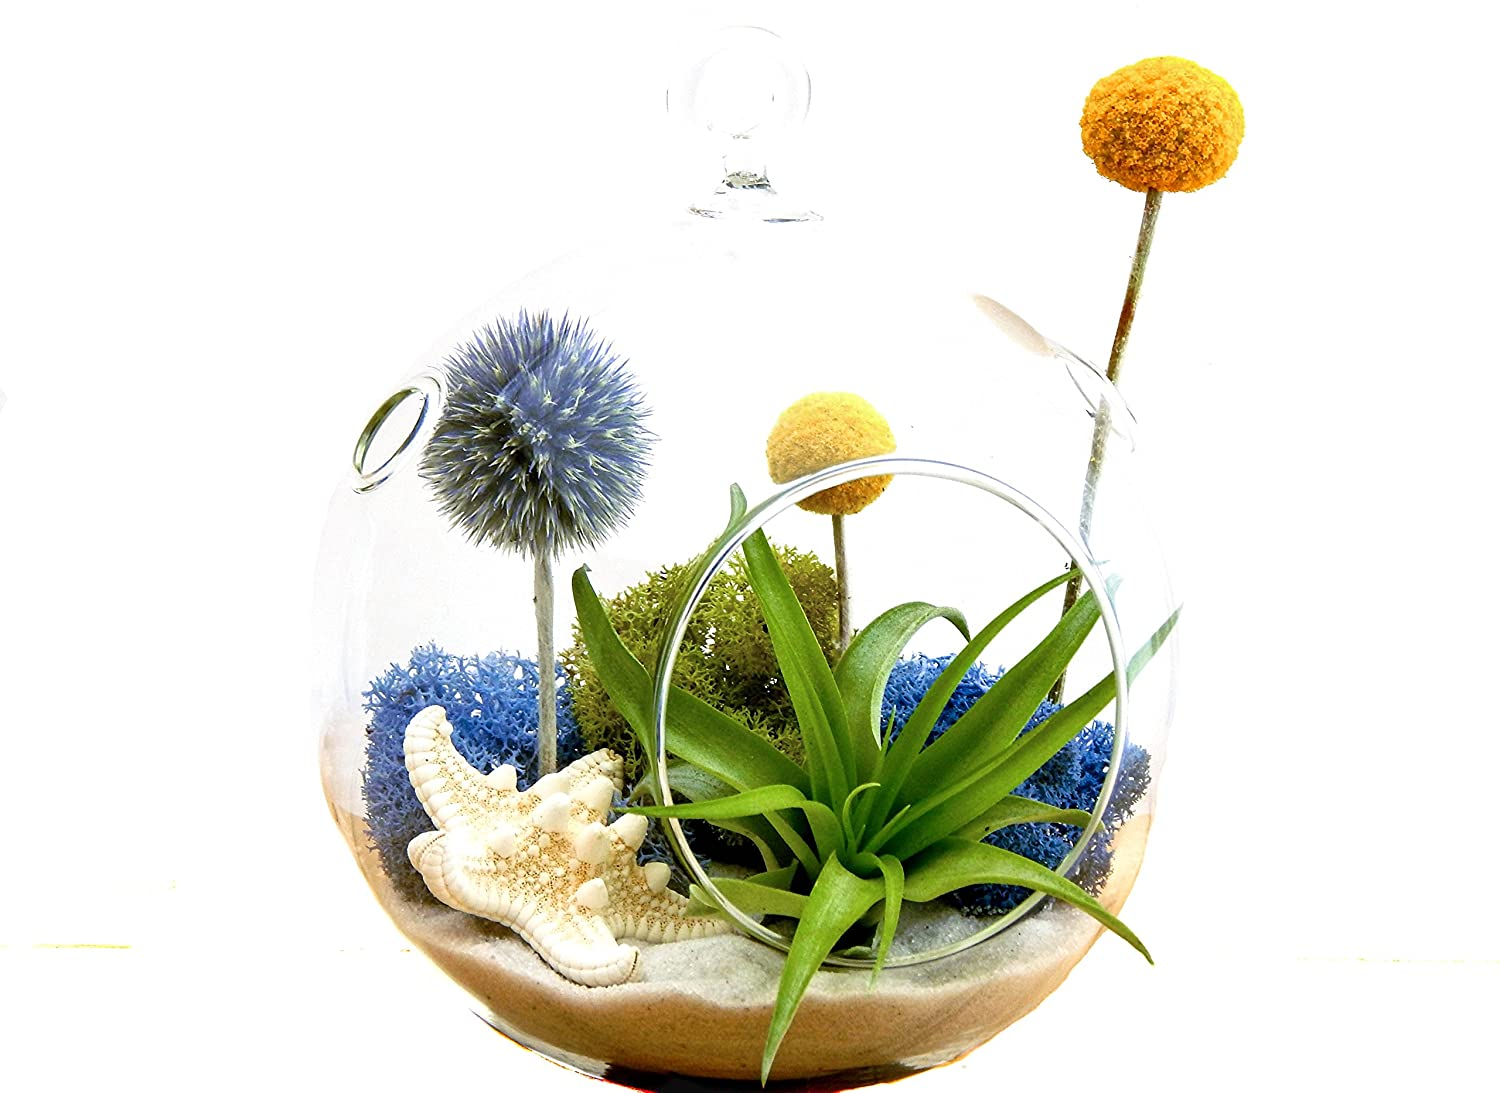 Bliss Gardens Air Plant Terrarium with Starfish, Moss, Flowers, 5 Round Glass -Deep Blue Sea